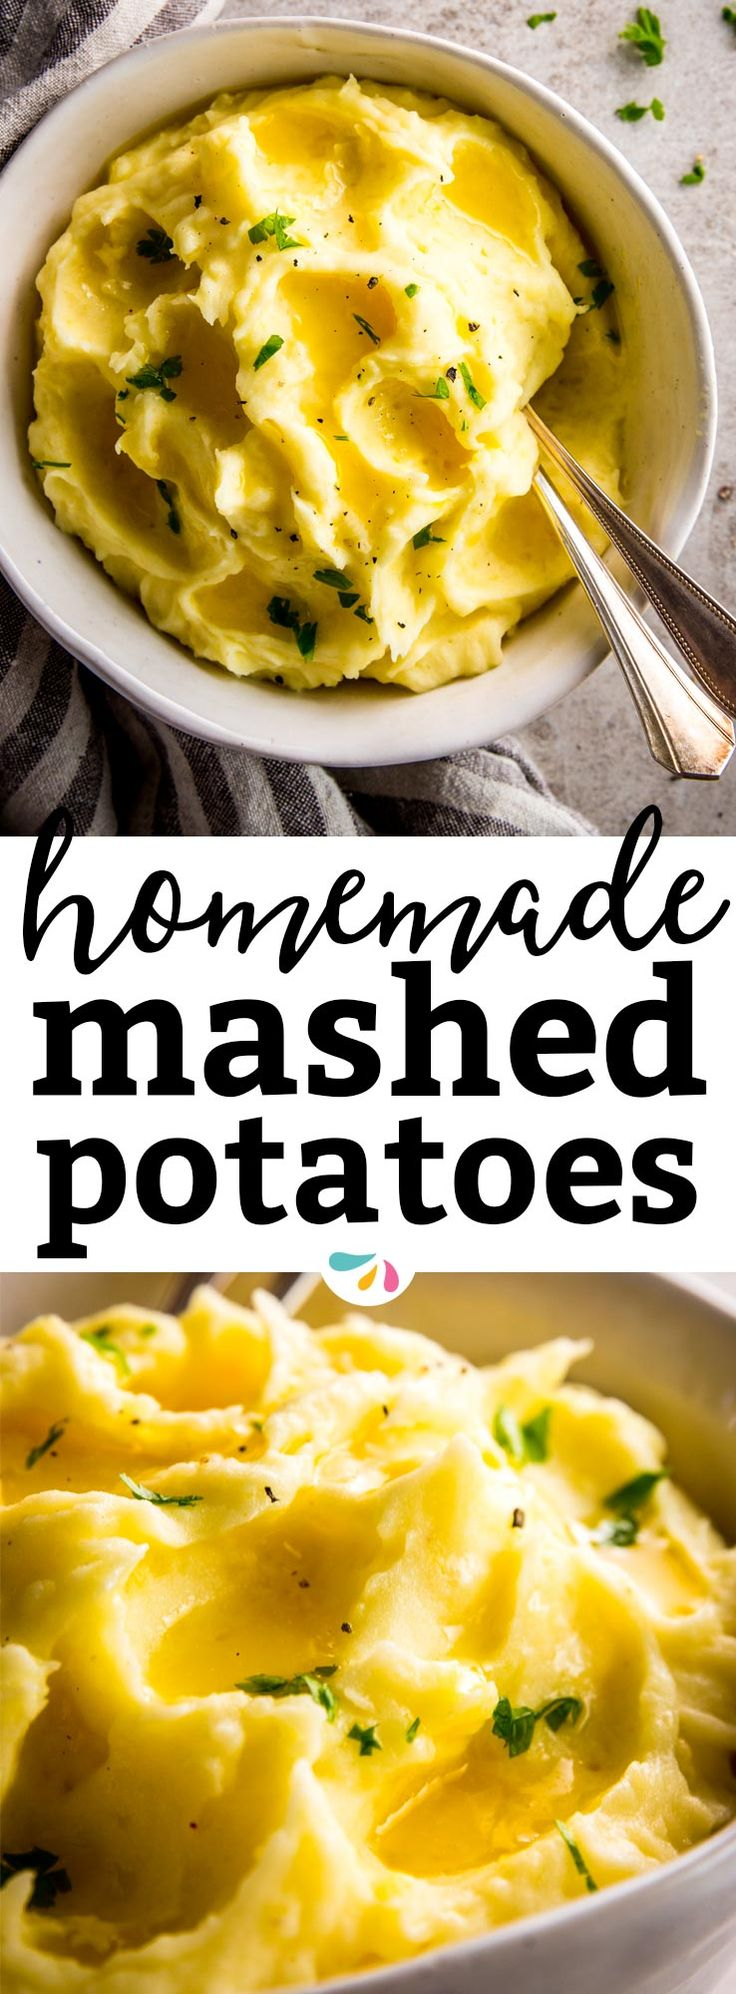 You want to serve up a steaming bowl of creamy, fluffy, buttery mashed potatoes... And I have all the tips and secrets for you to make it happen. No matter if it's for Thanksgiving, for Christmas or just because mash is so darn good... This homemade recipe is easy, creamy, quick and simply perfect as a side dish for any special dinner.   #comfortfood #recipes #thanksgiving #thanksgivingrecipes #sidedish #vegetarian #christmas #holidays #holidayfood